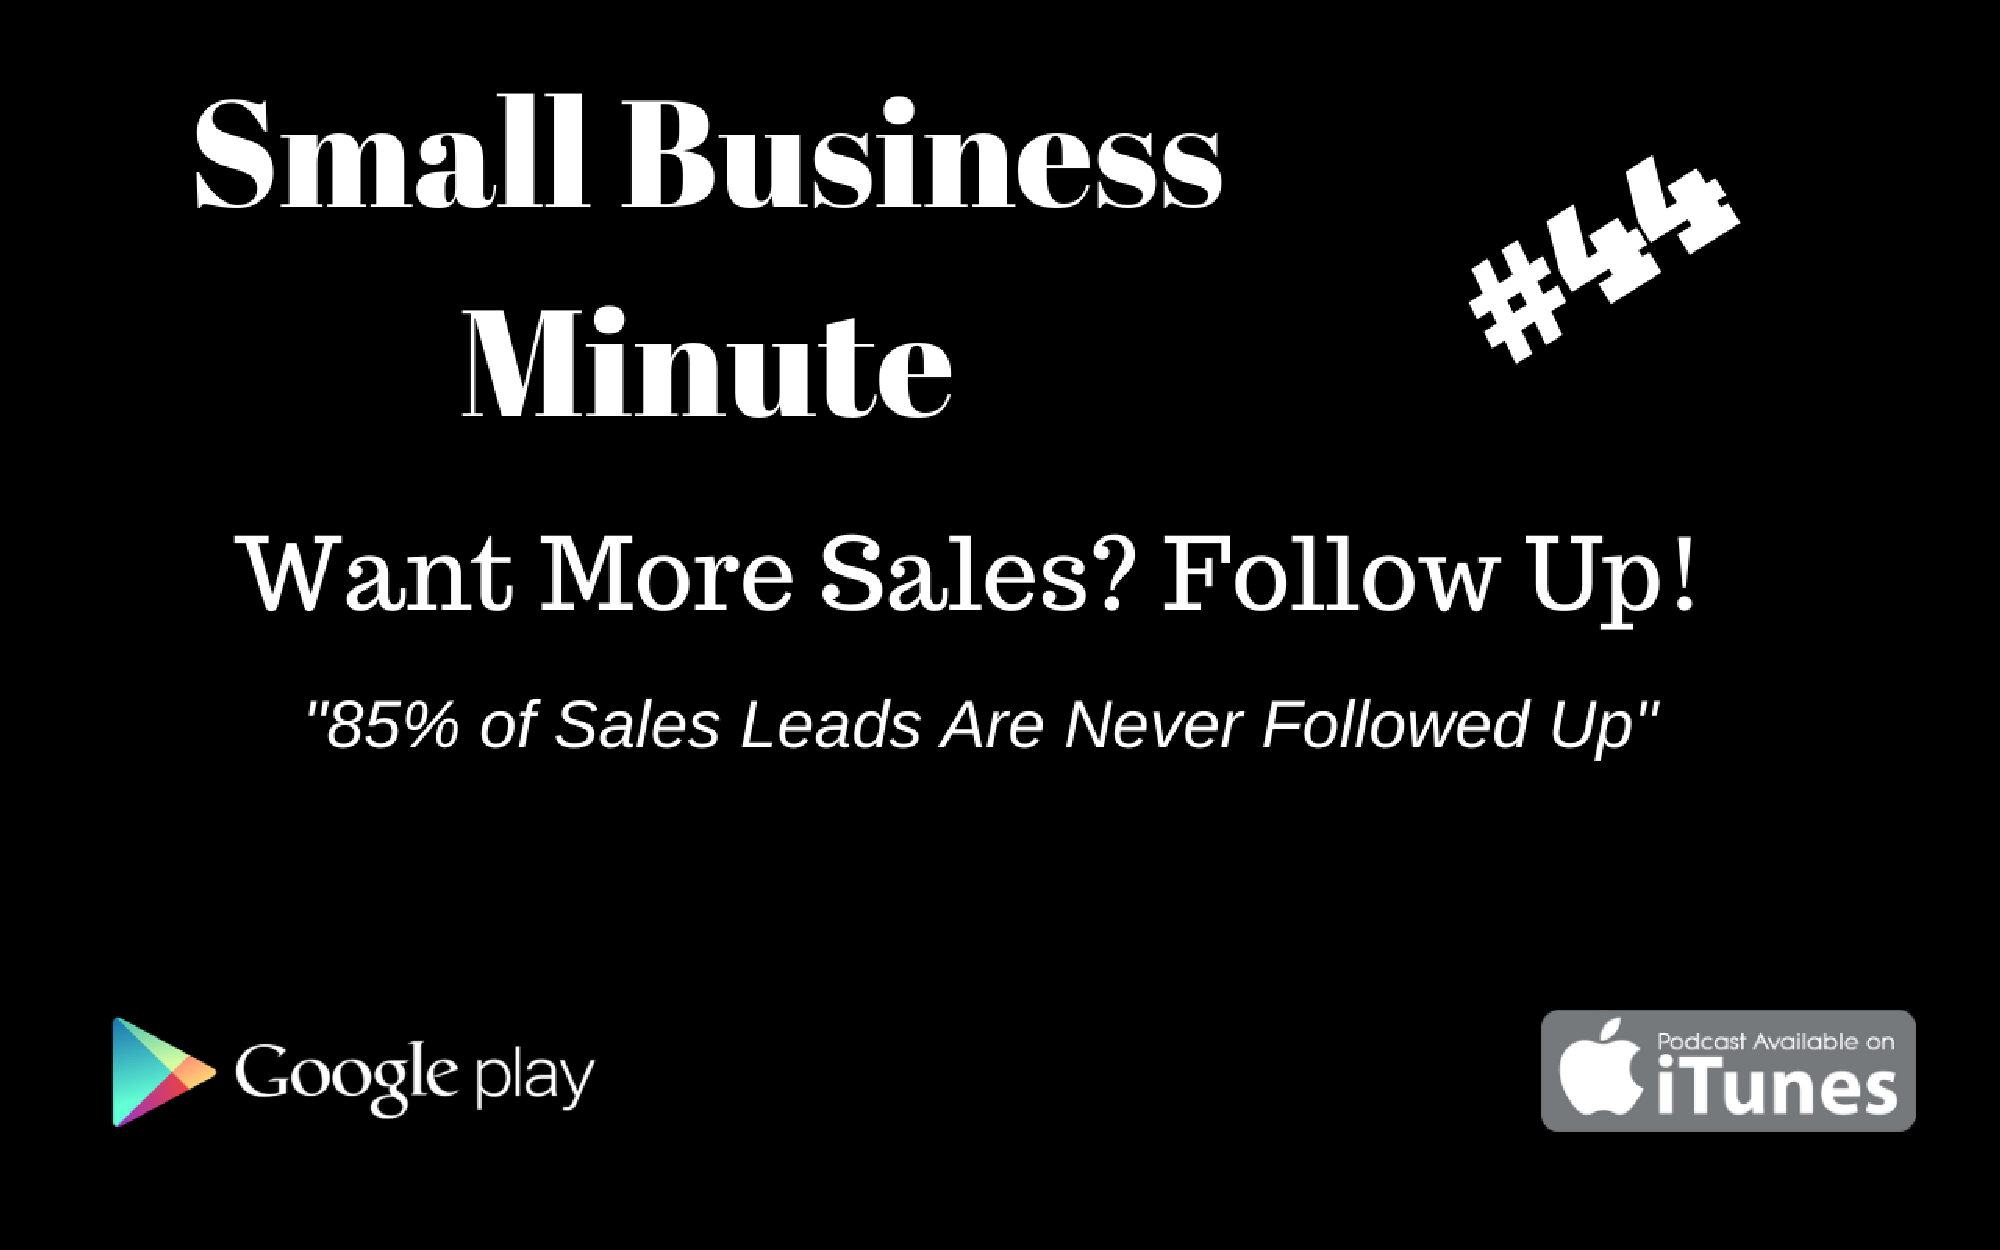 Small Business Minute #44 Want More Sales- Follow Up!